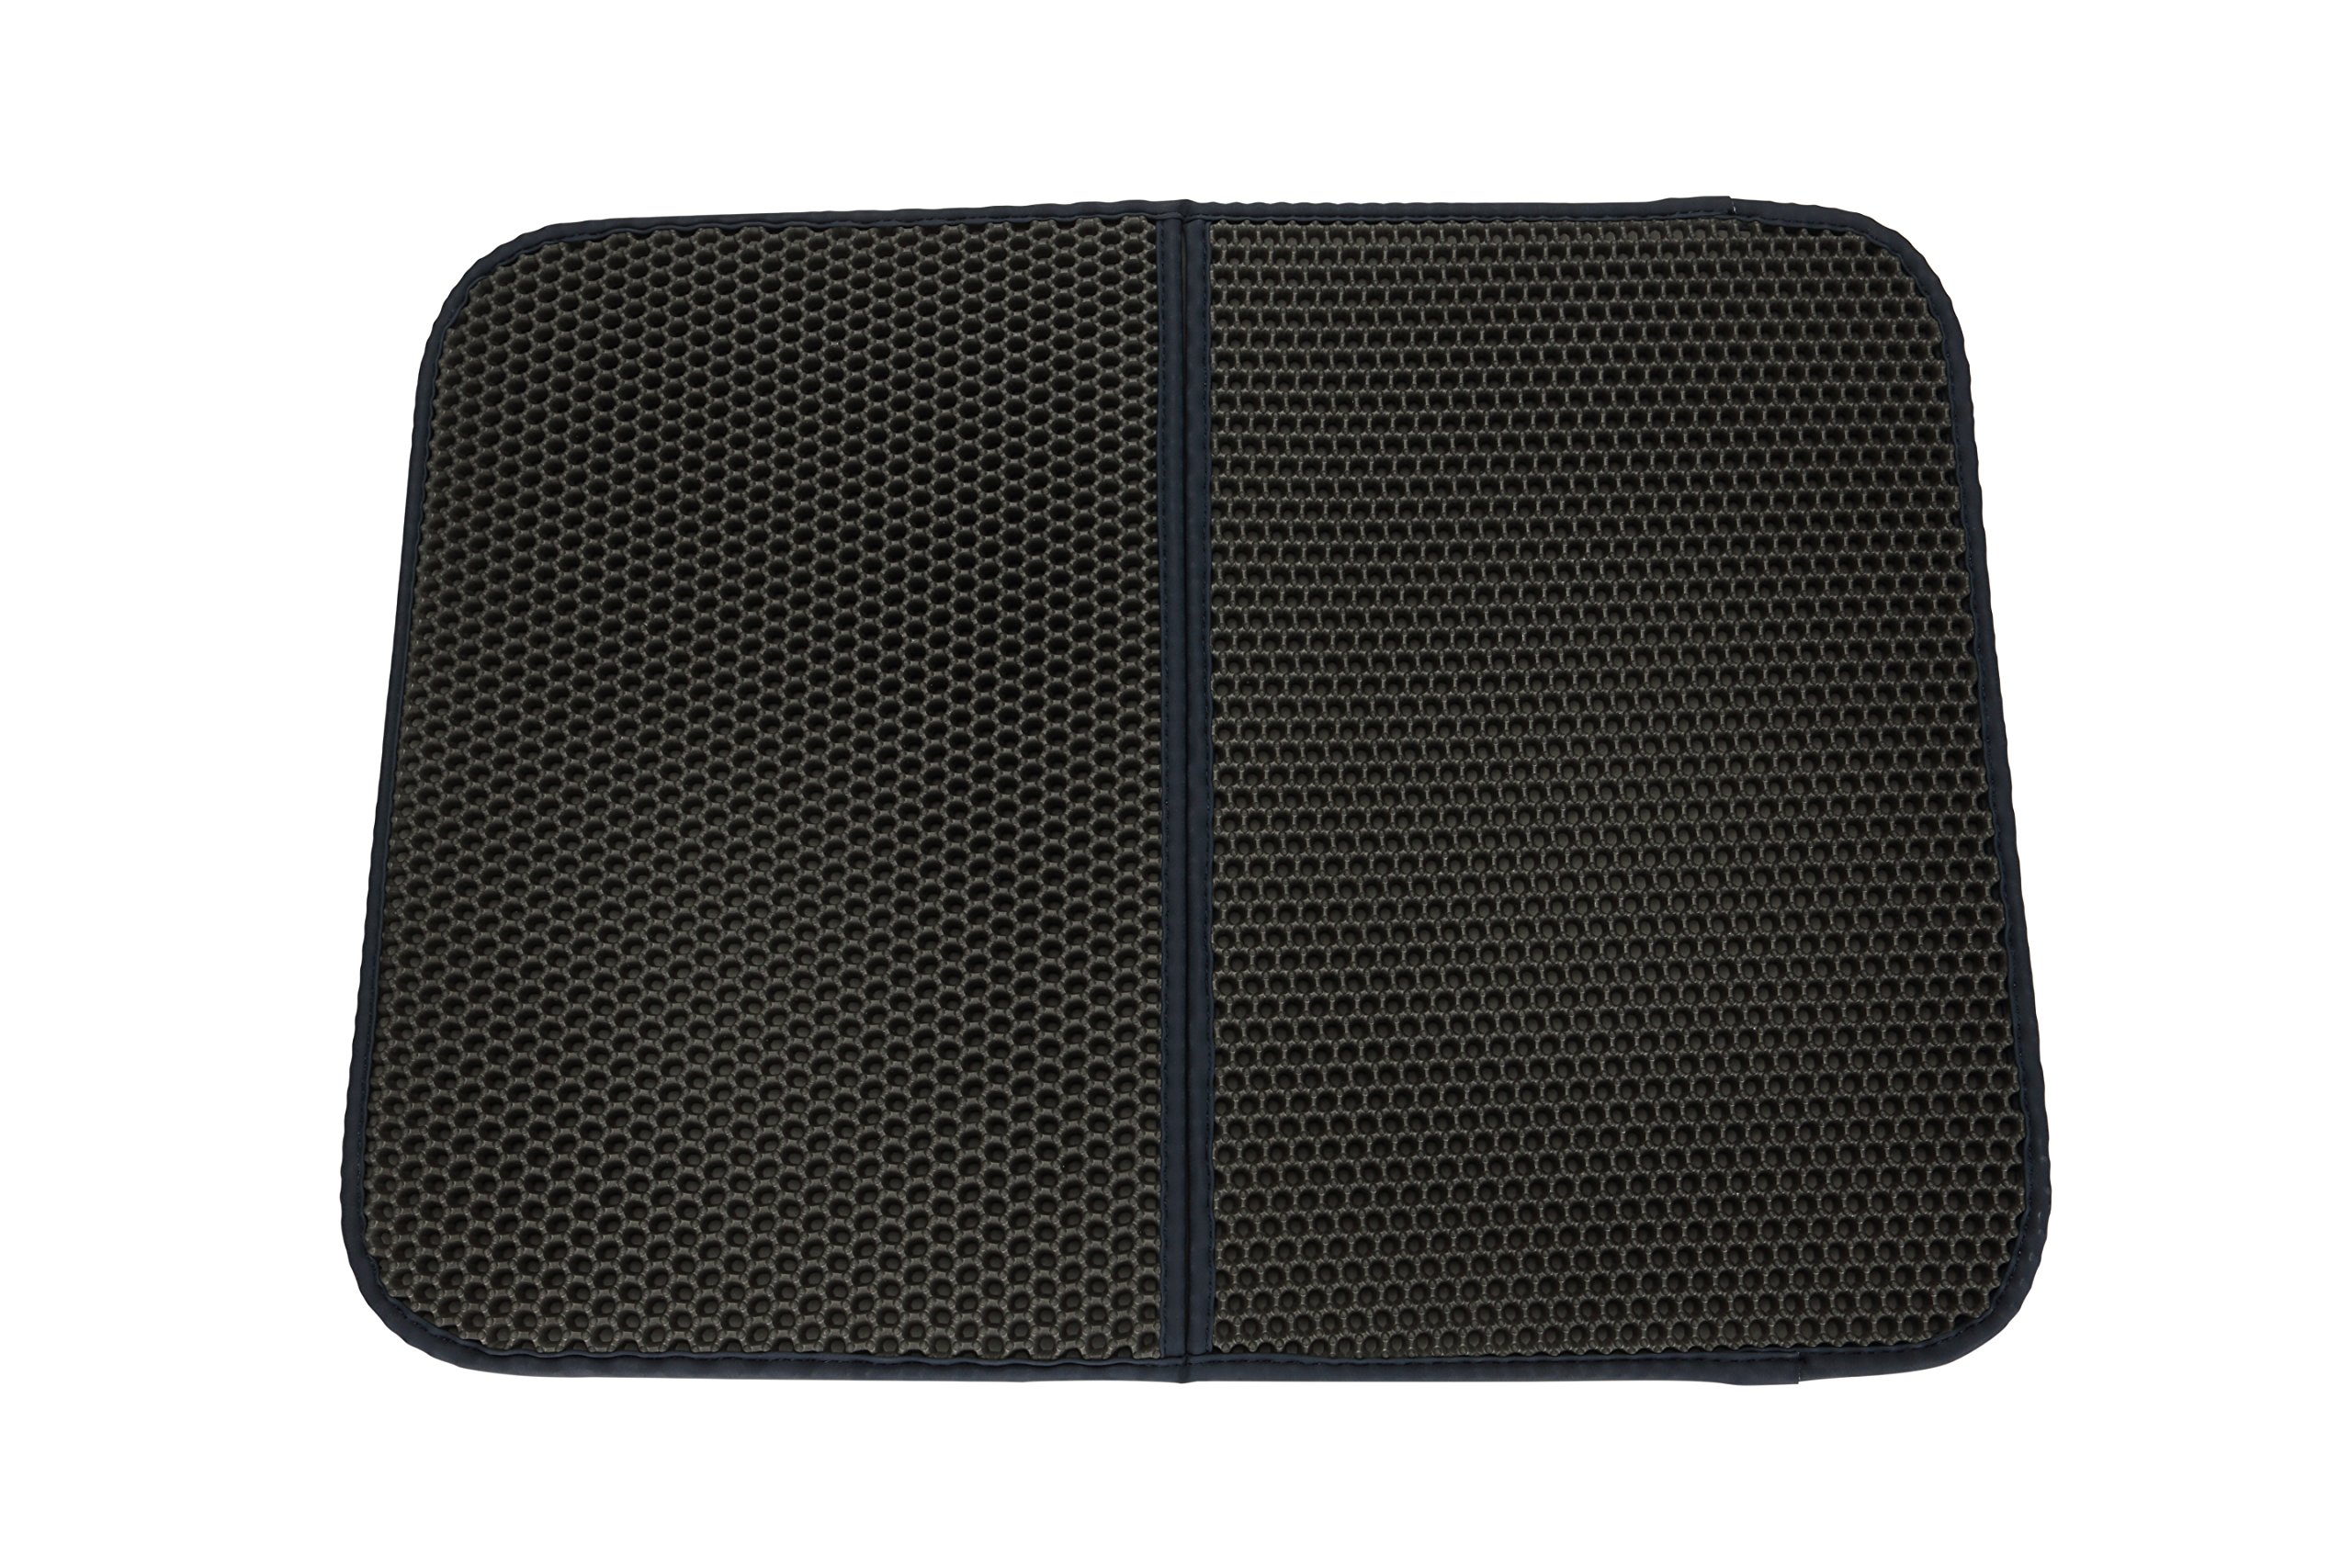 Petneces Cat Litter Trapper Mat Double Waterproof Layer Honeycomb Design, Best Scatter Control,Traps Litter Pan from Box and Paws(black)